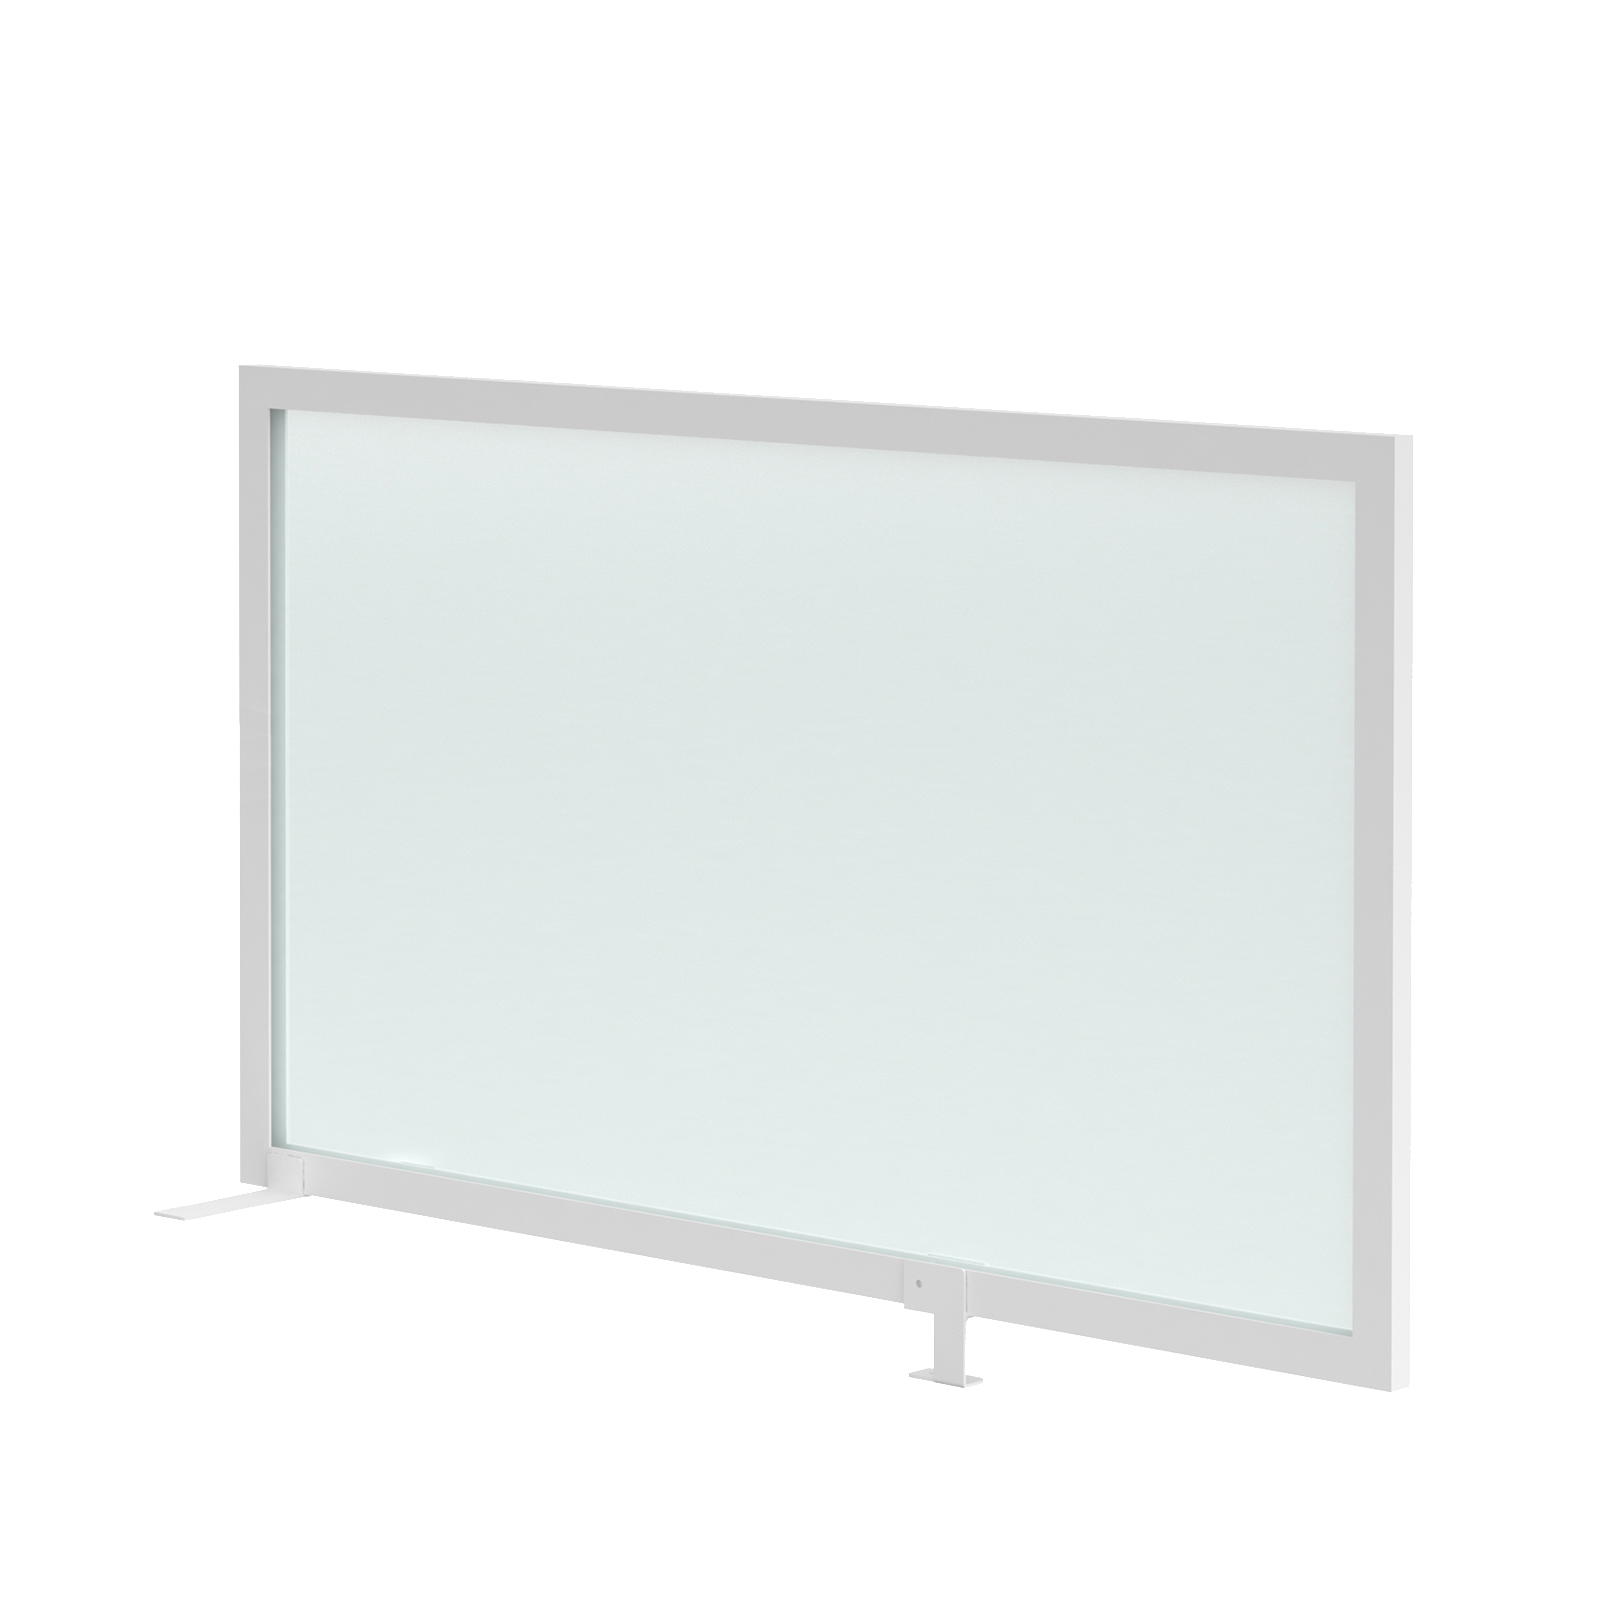 Straight Tops Clear polyvinyl desk mounted high return screen 1200mm with bracket